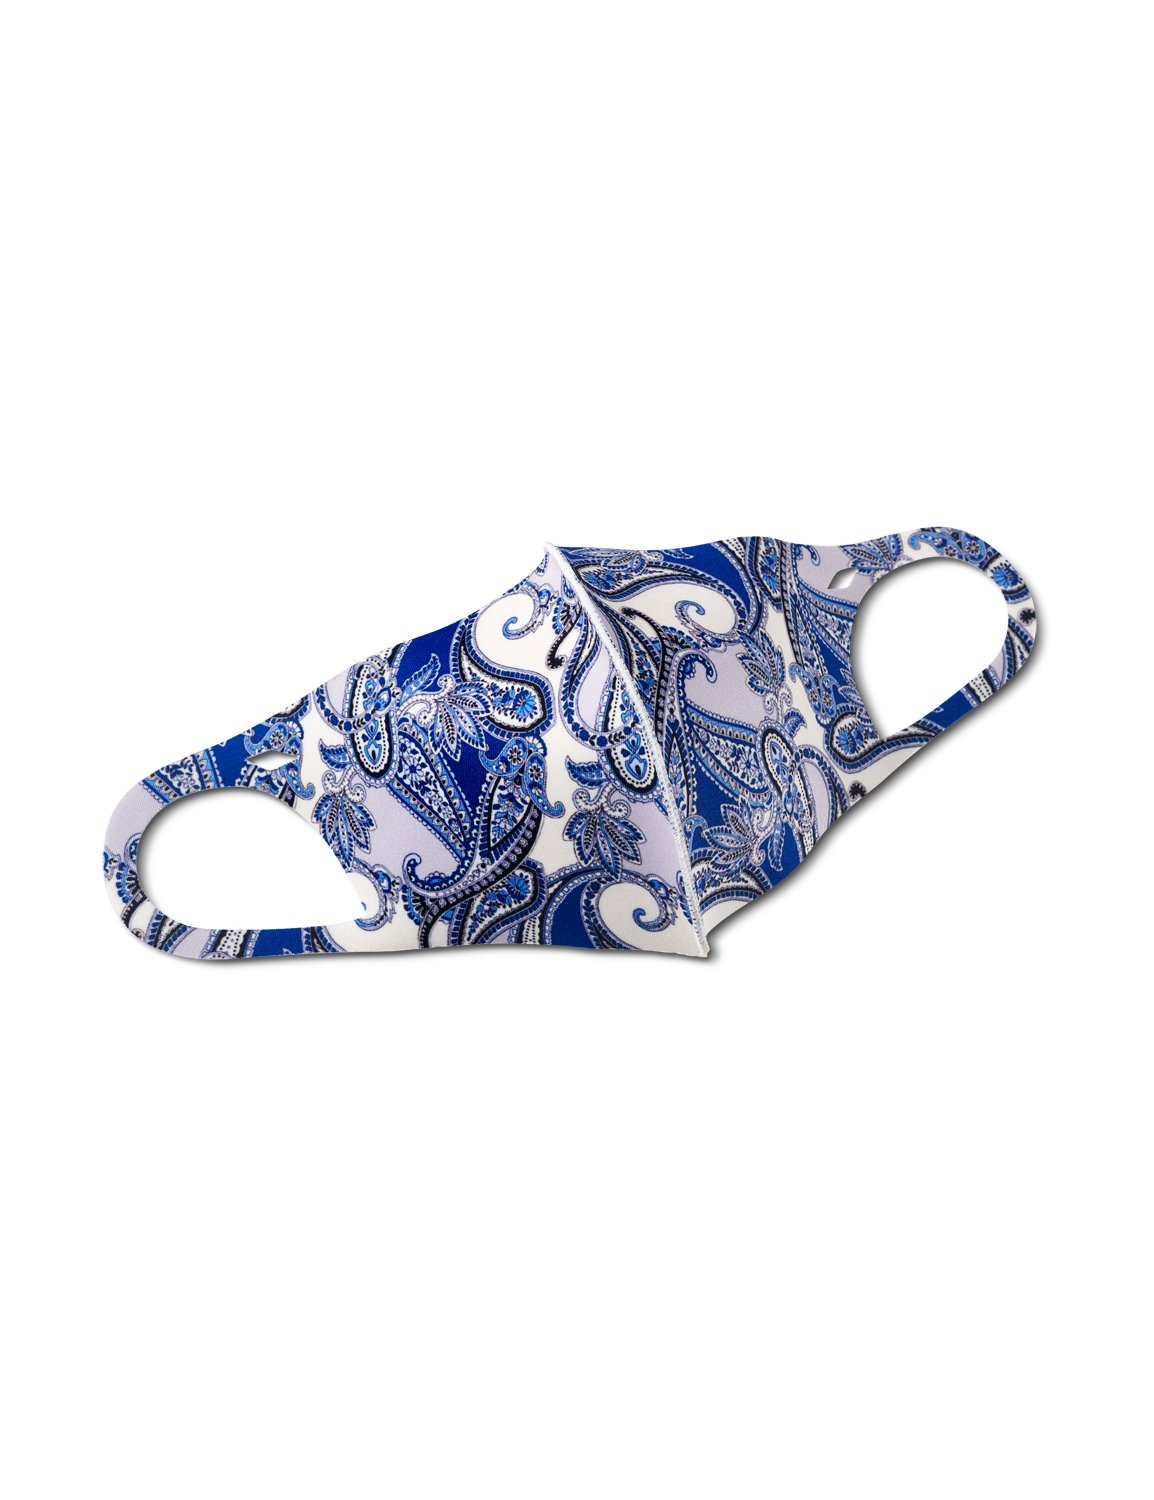 Pre-Order Denim Paisley Anti-Bacterial Fashion Face Mask -Blue - Front